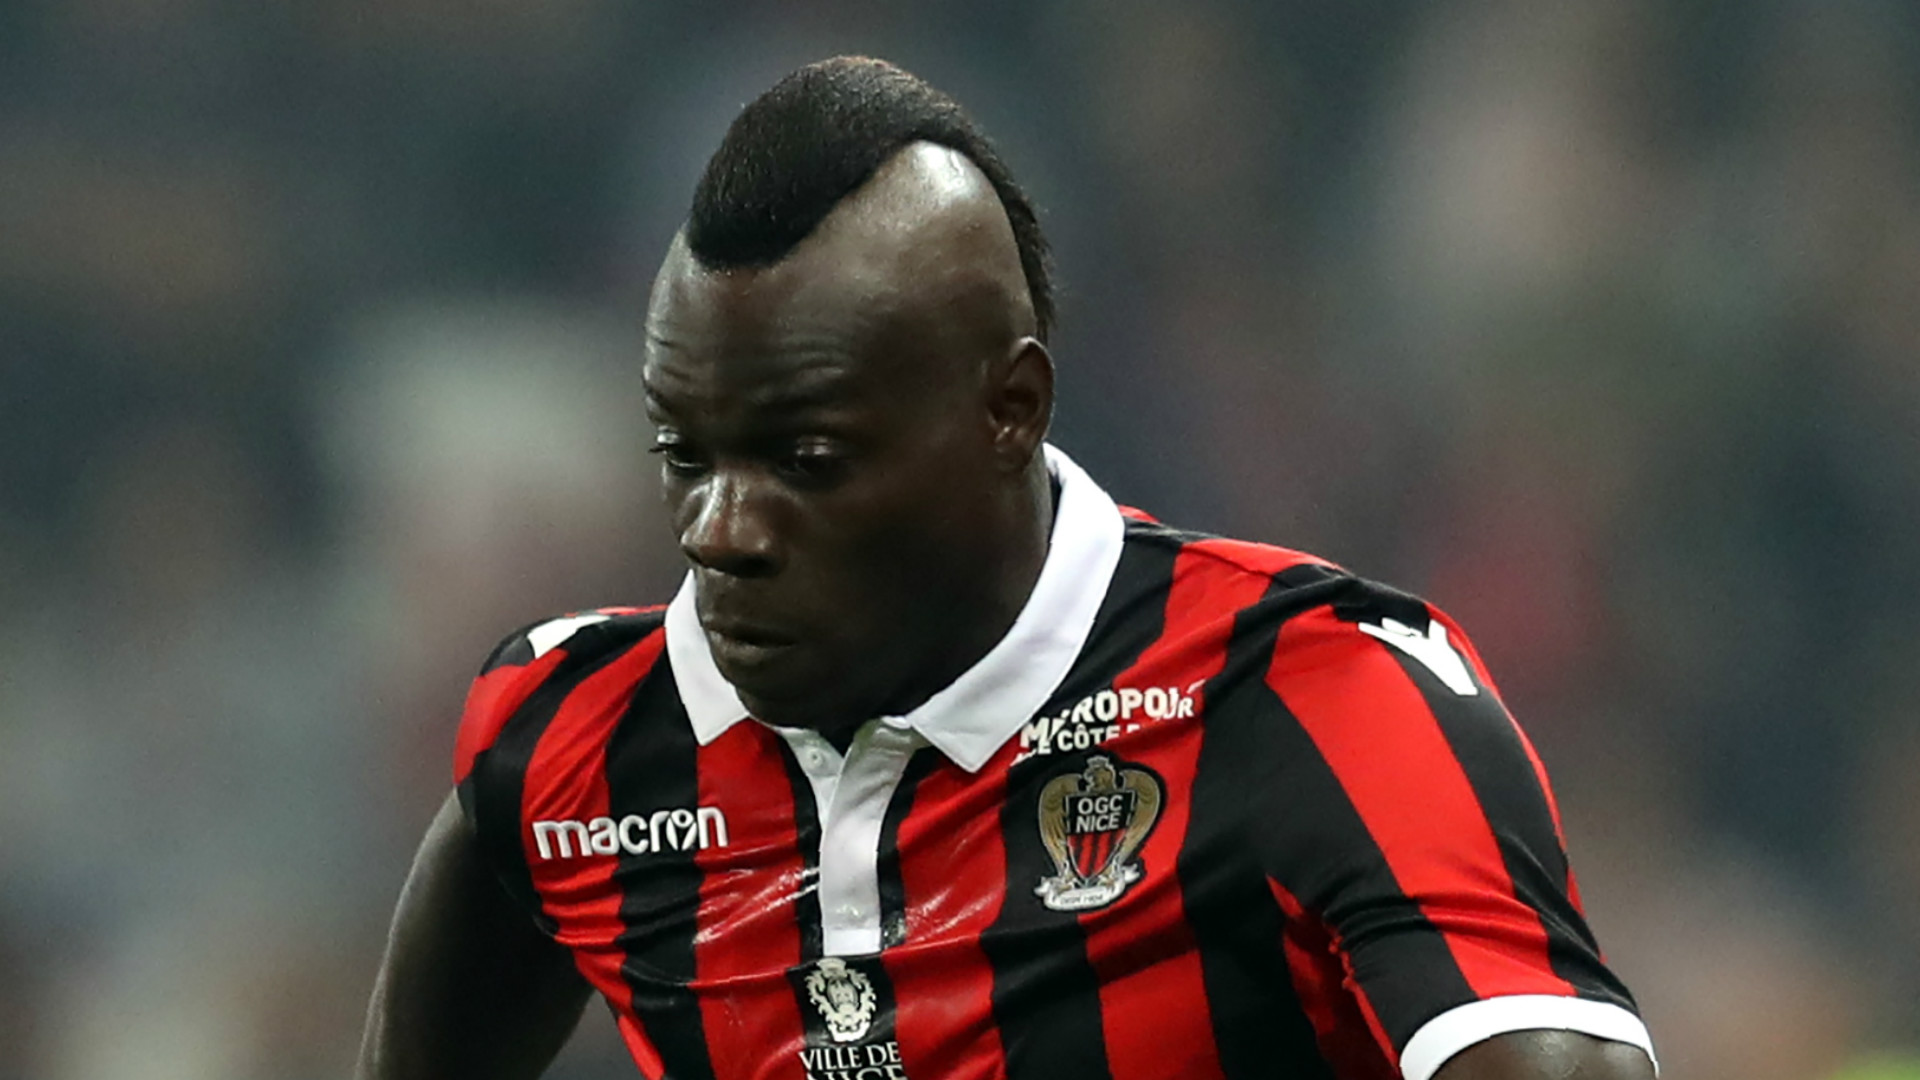 Balotelli told 'nothing is impossible' as Vieira suggests Italian may have Nice future